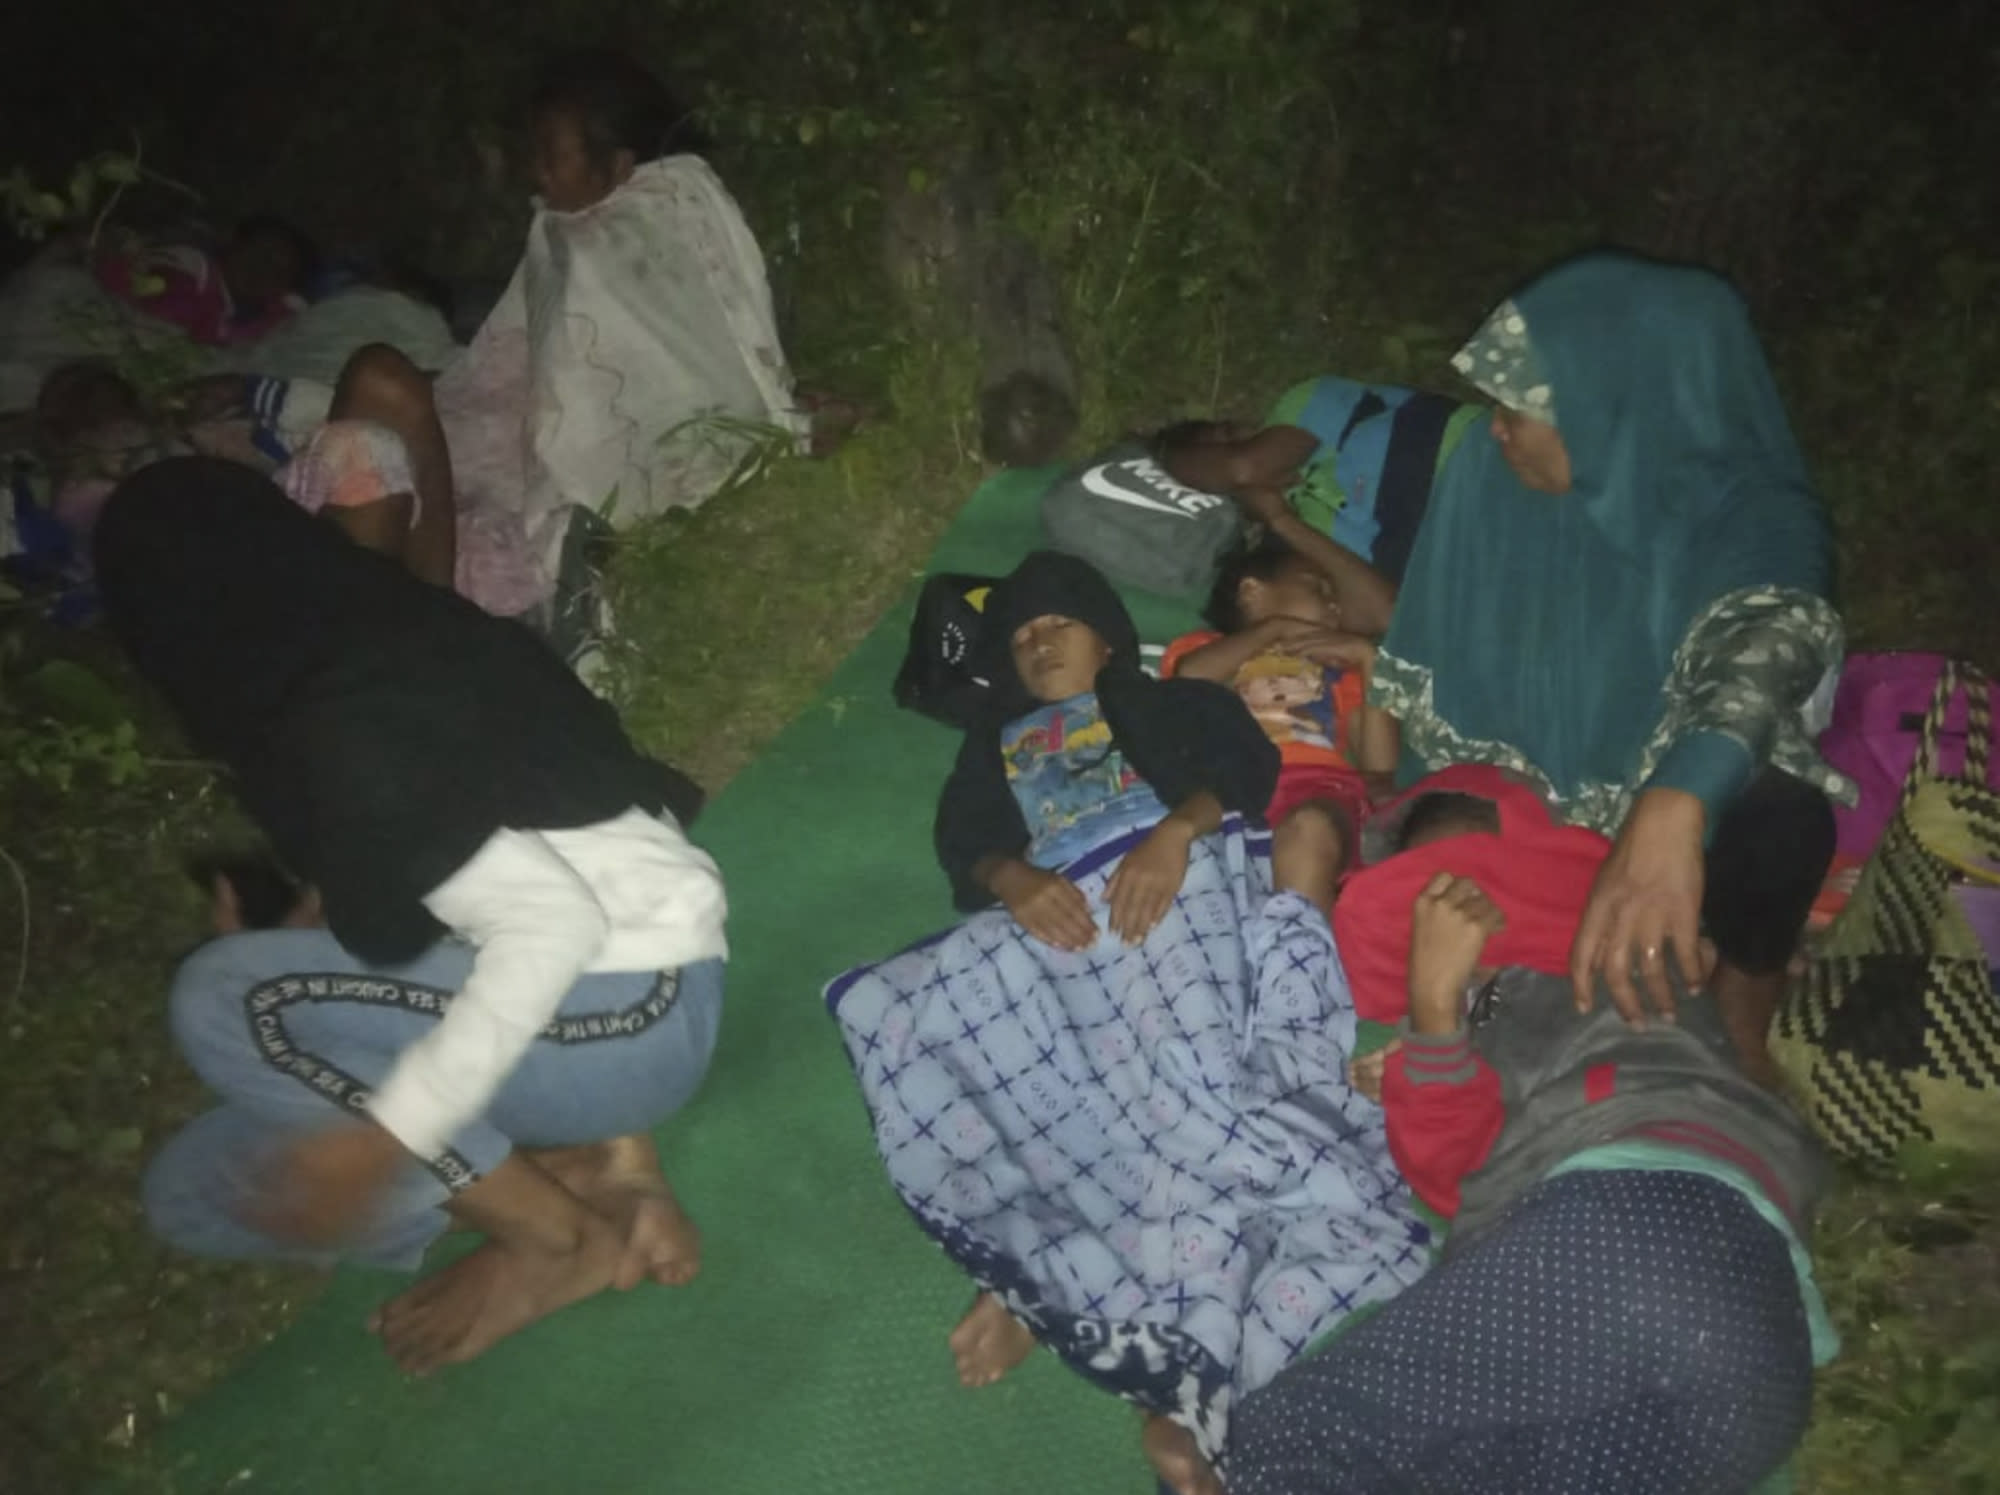 Residents sleep on the ground after leaving their homes to find higher grounds following an earthquake in Gane Utara, North Maluku, Indonesia, Sunday, July 14, 2019. A strong, shallow earthquake struck eastern Indonesia on Sunday, damaging some homes and causing panicked residents to flee to temporary shelters. There were no immediate reports of casualties, and authorities said there was no threat of a tsunami. (AP Photo)